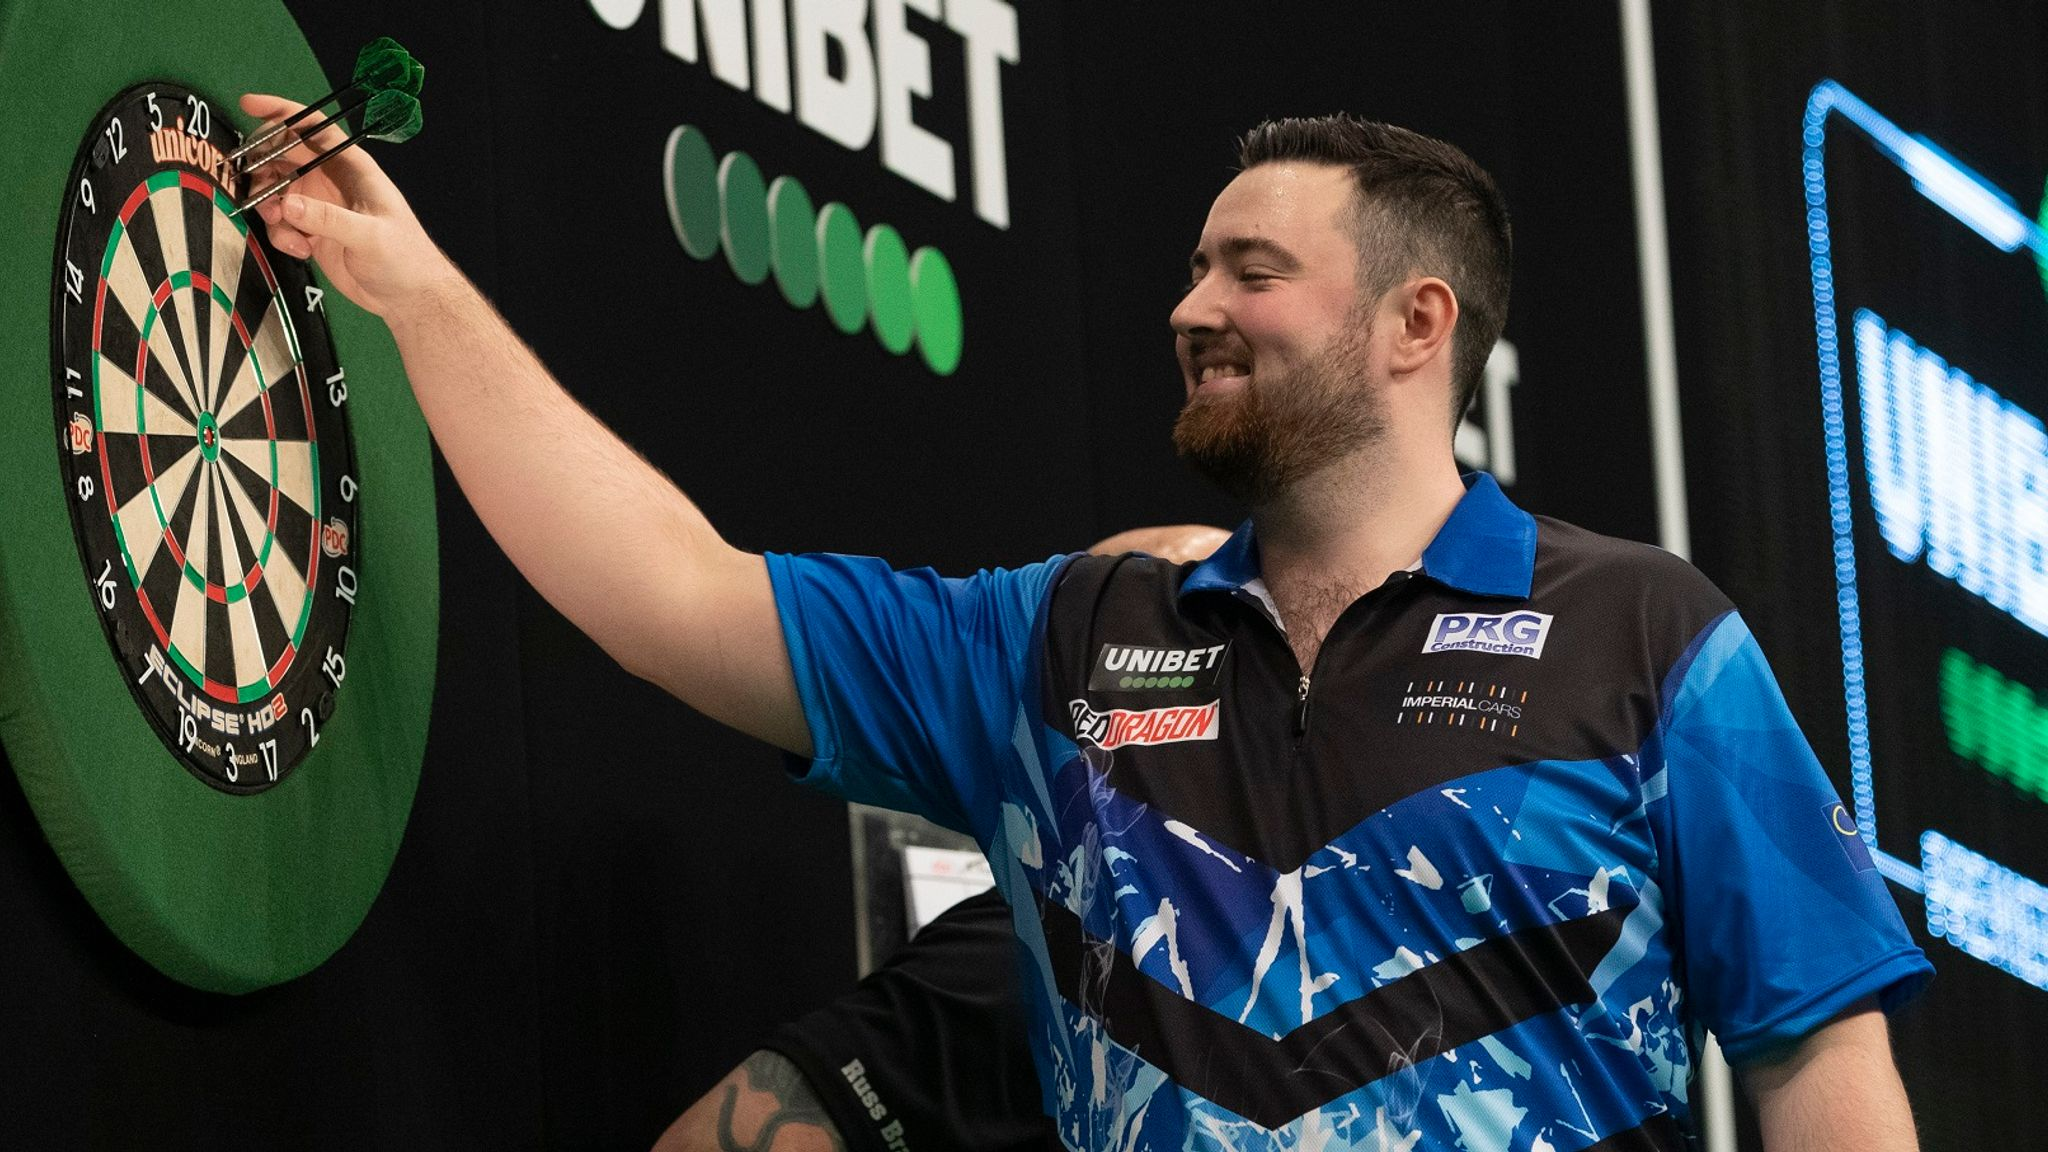 Premier league darts betting tips week 12 dd hh betting lines